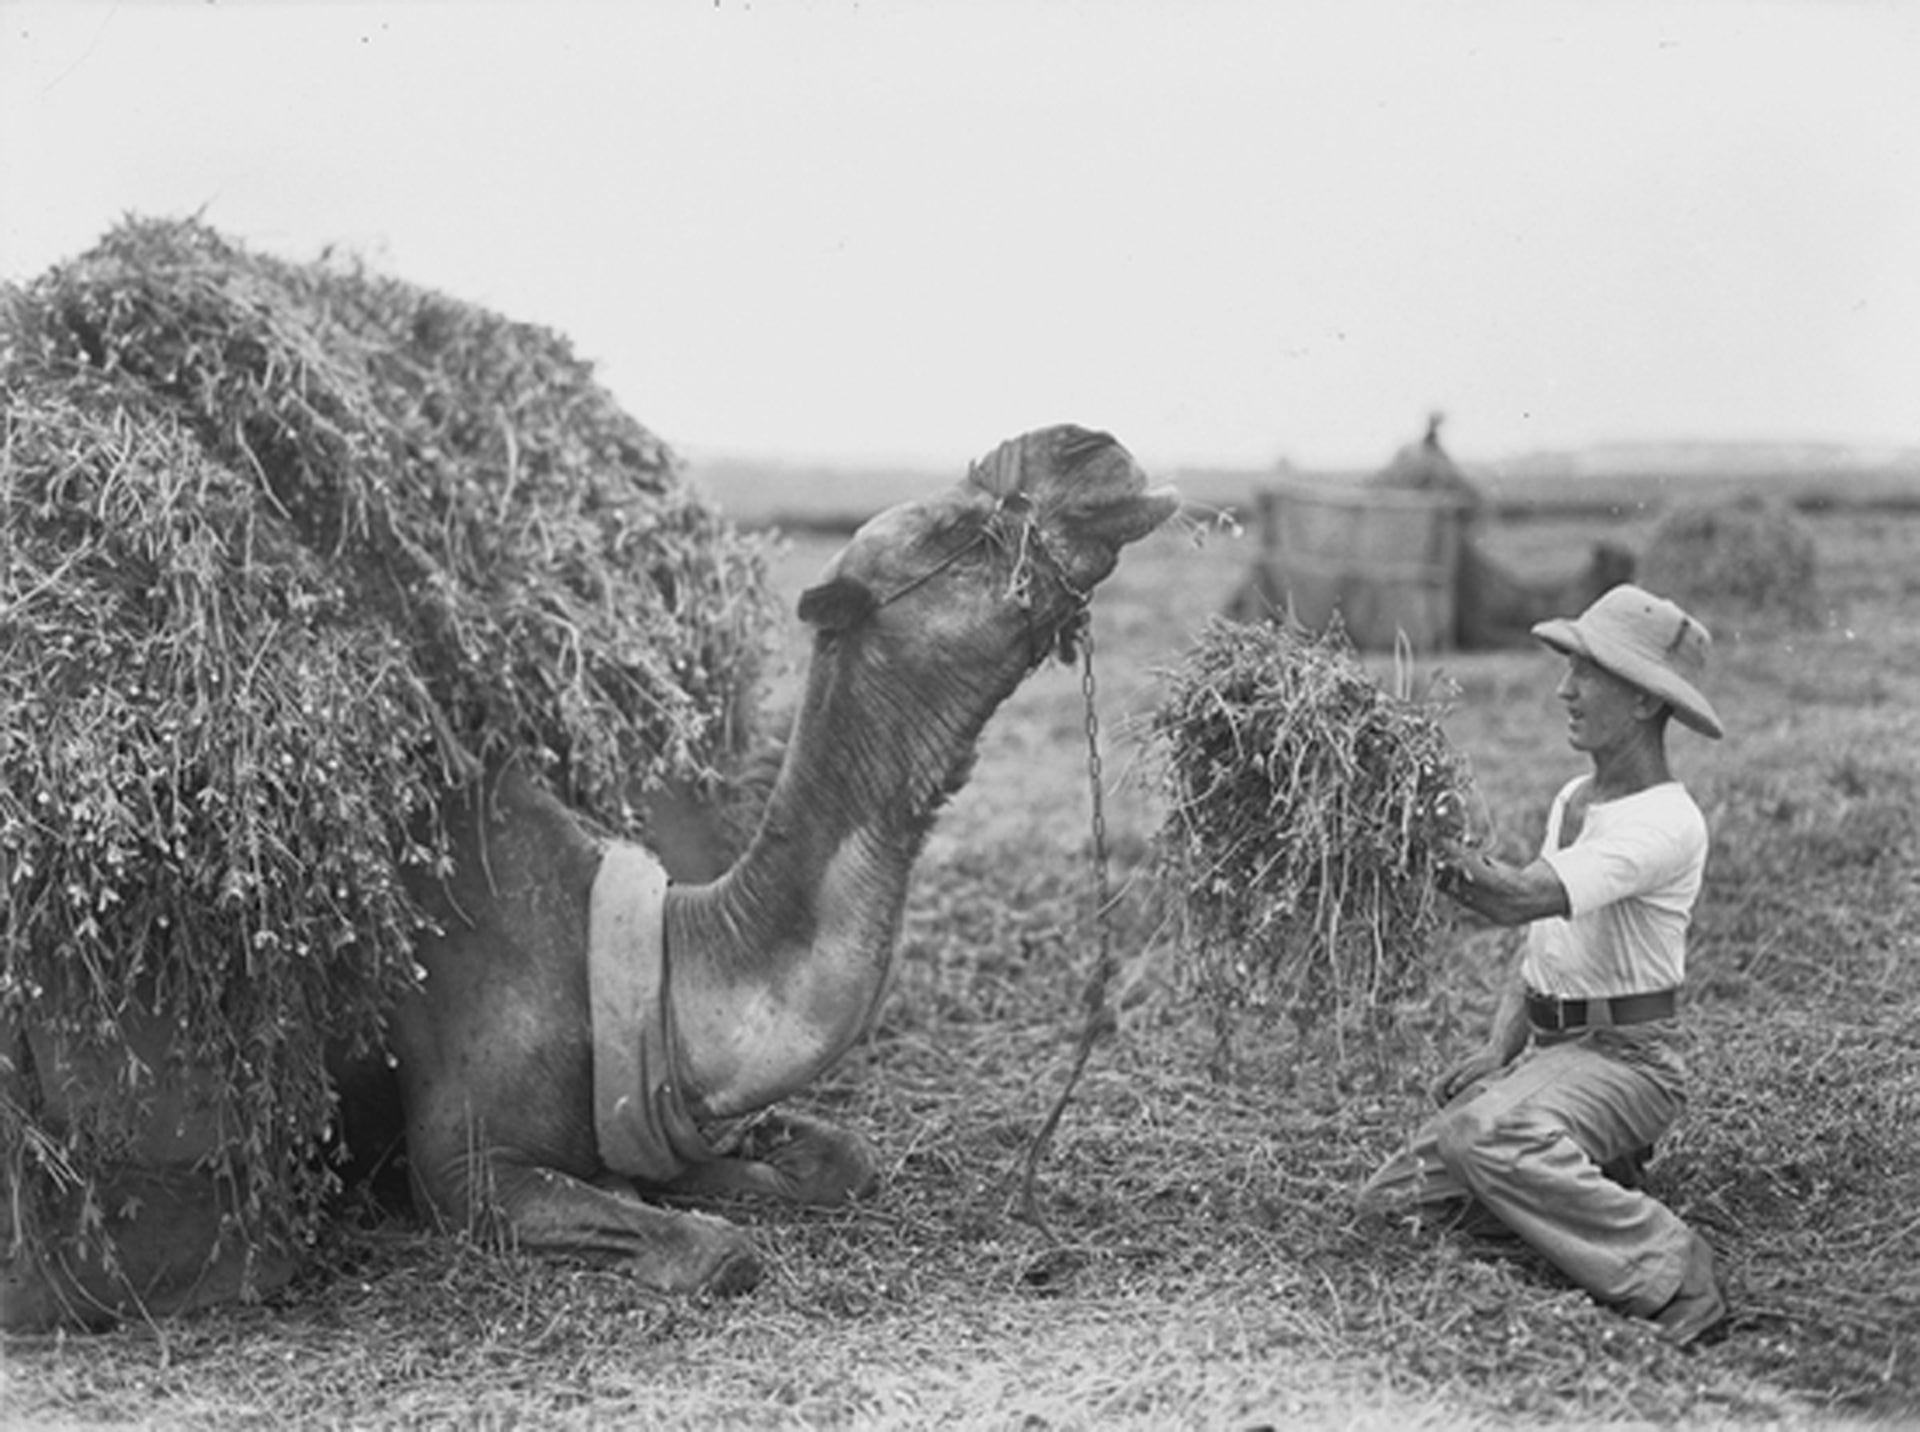 Loading hay onto a camel at Kfar Vitkin, 1939.